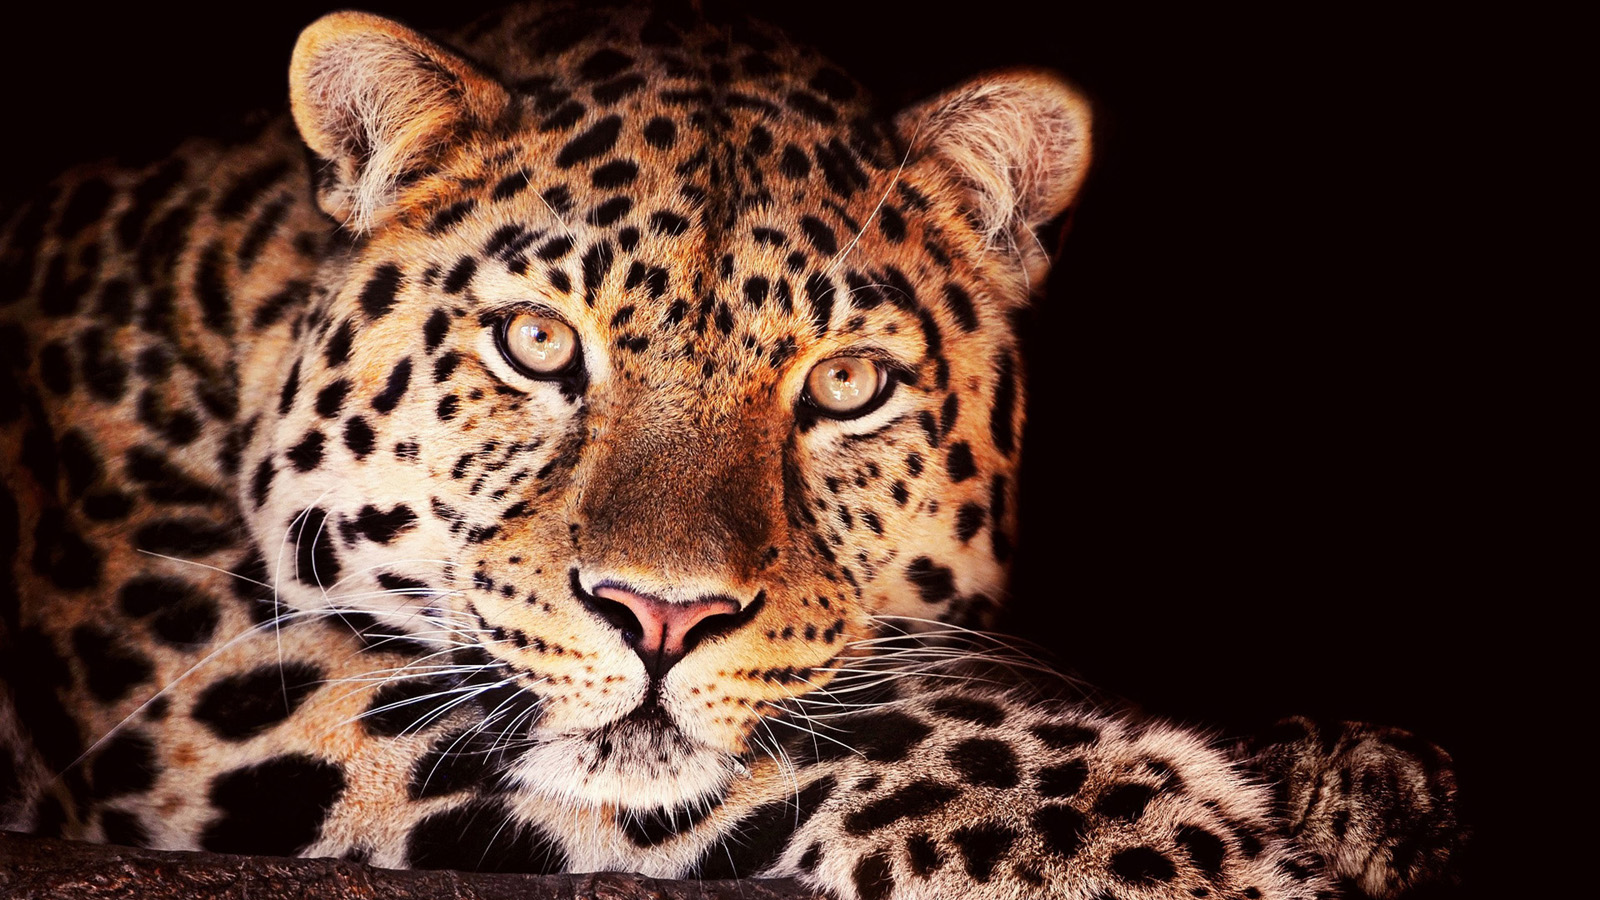 Leopard In Albero Wallpaper Hd Animali 1600x900 Natalyanders Fan